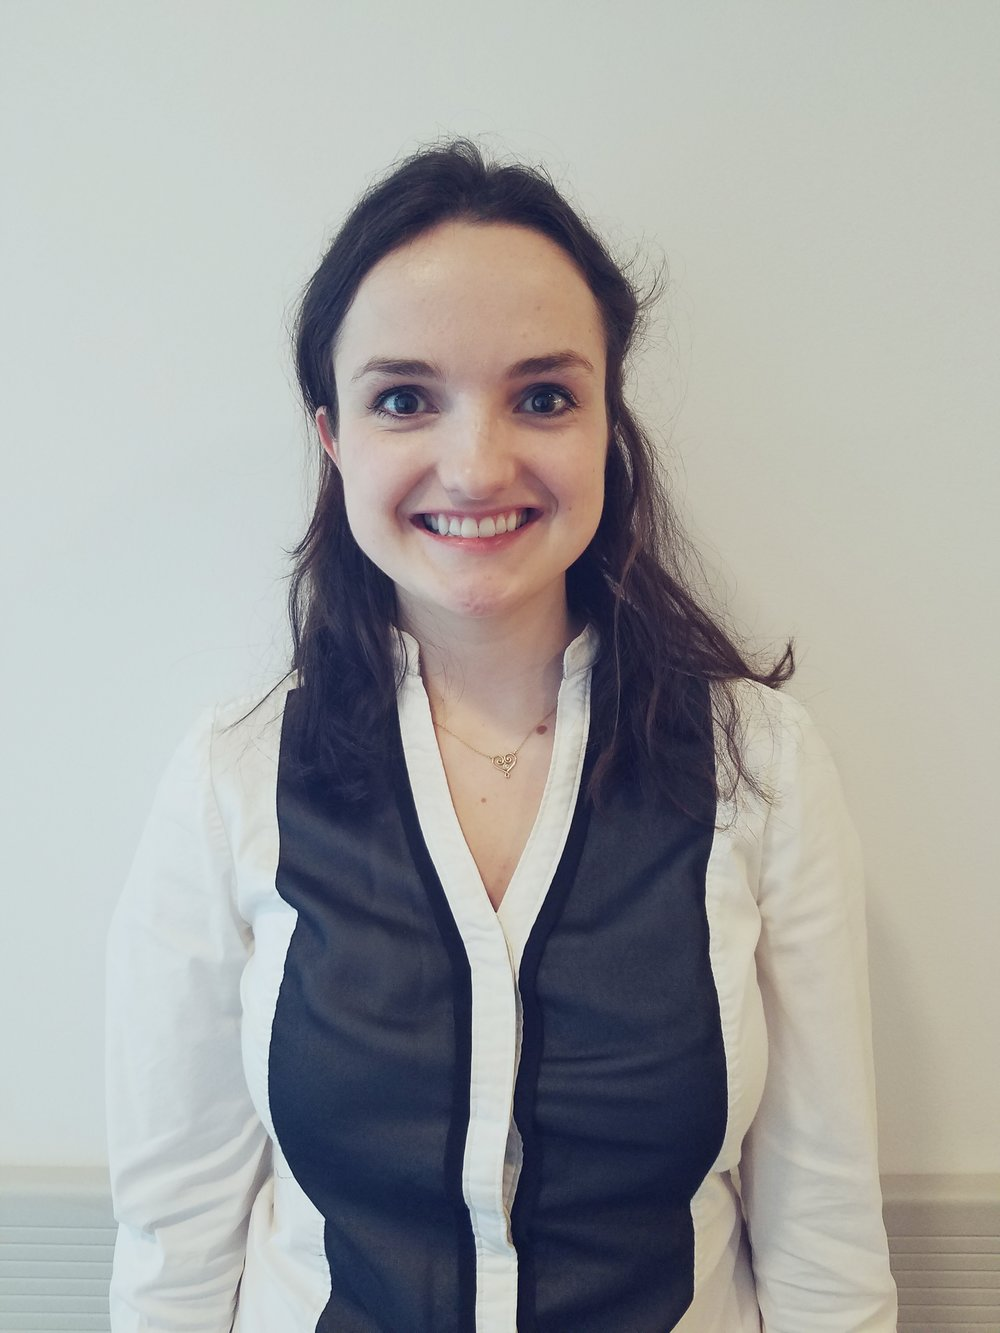 Anna Chlopecki - Anna Chlopecki started with Progressive Insurance as a Business Systems Analyst in 2016, where she leads requirements elicitation for enterprise projects. She has held multiple roles prior to Progressive which allowed her the ability to wear many